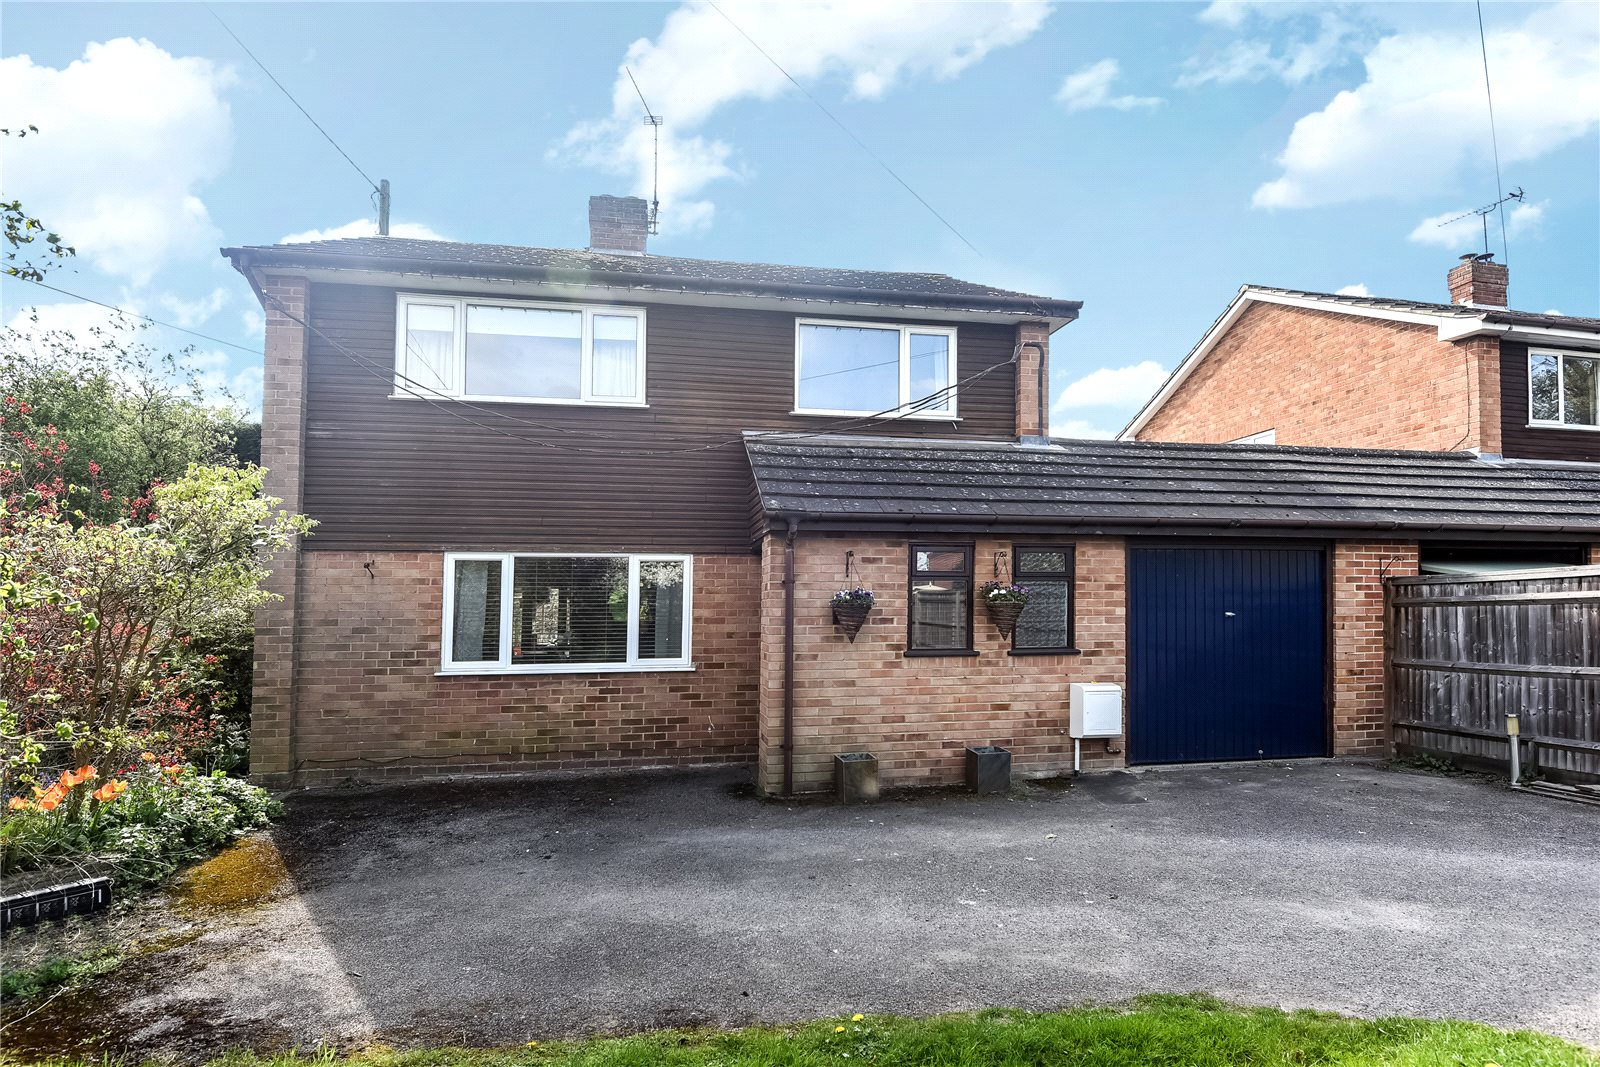 3 Bedrooms Link Detached House for sale in Bearwood Road, Wokingham, Berkshire, RG41